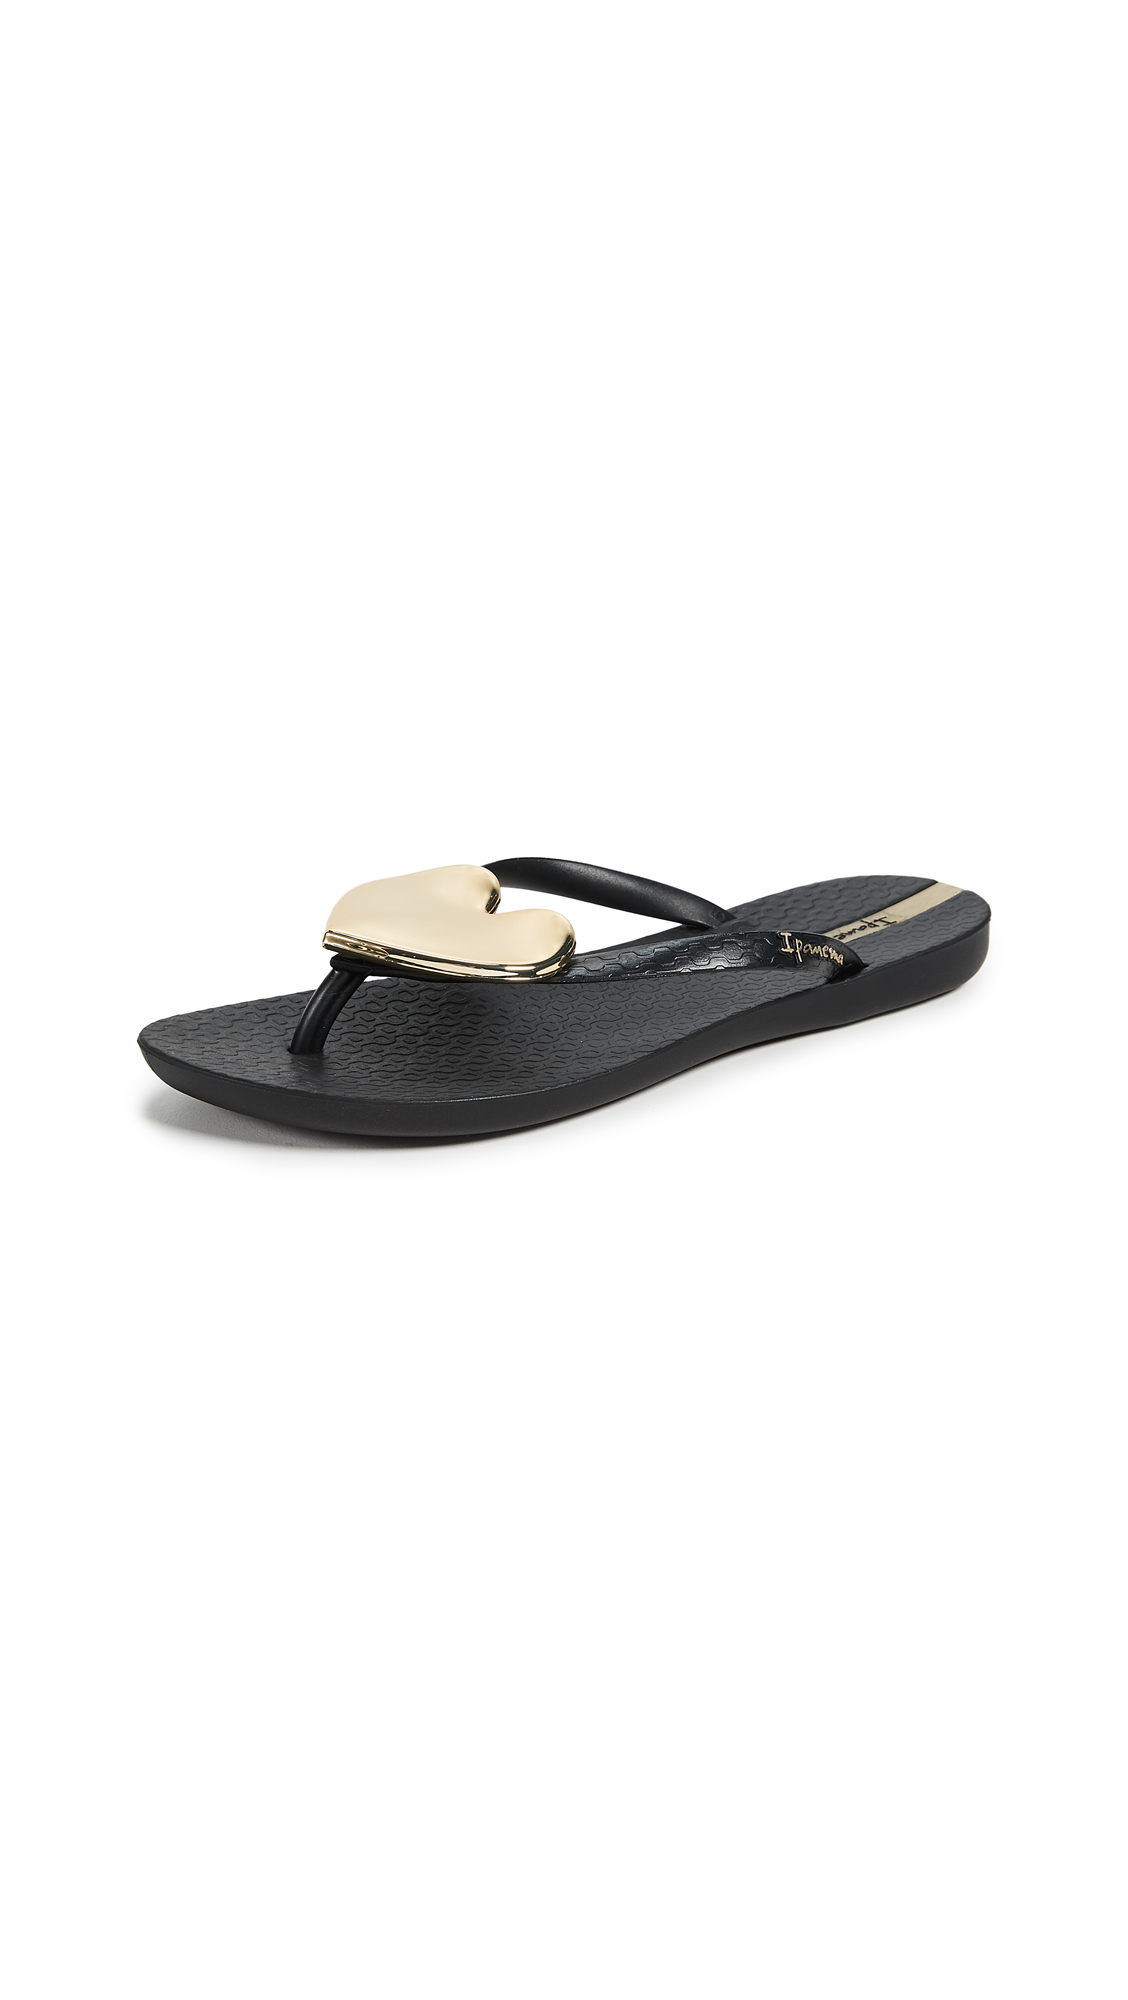 Ipanema Wave Heart Flip Flops - Black/Gold